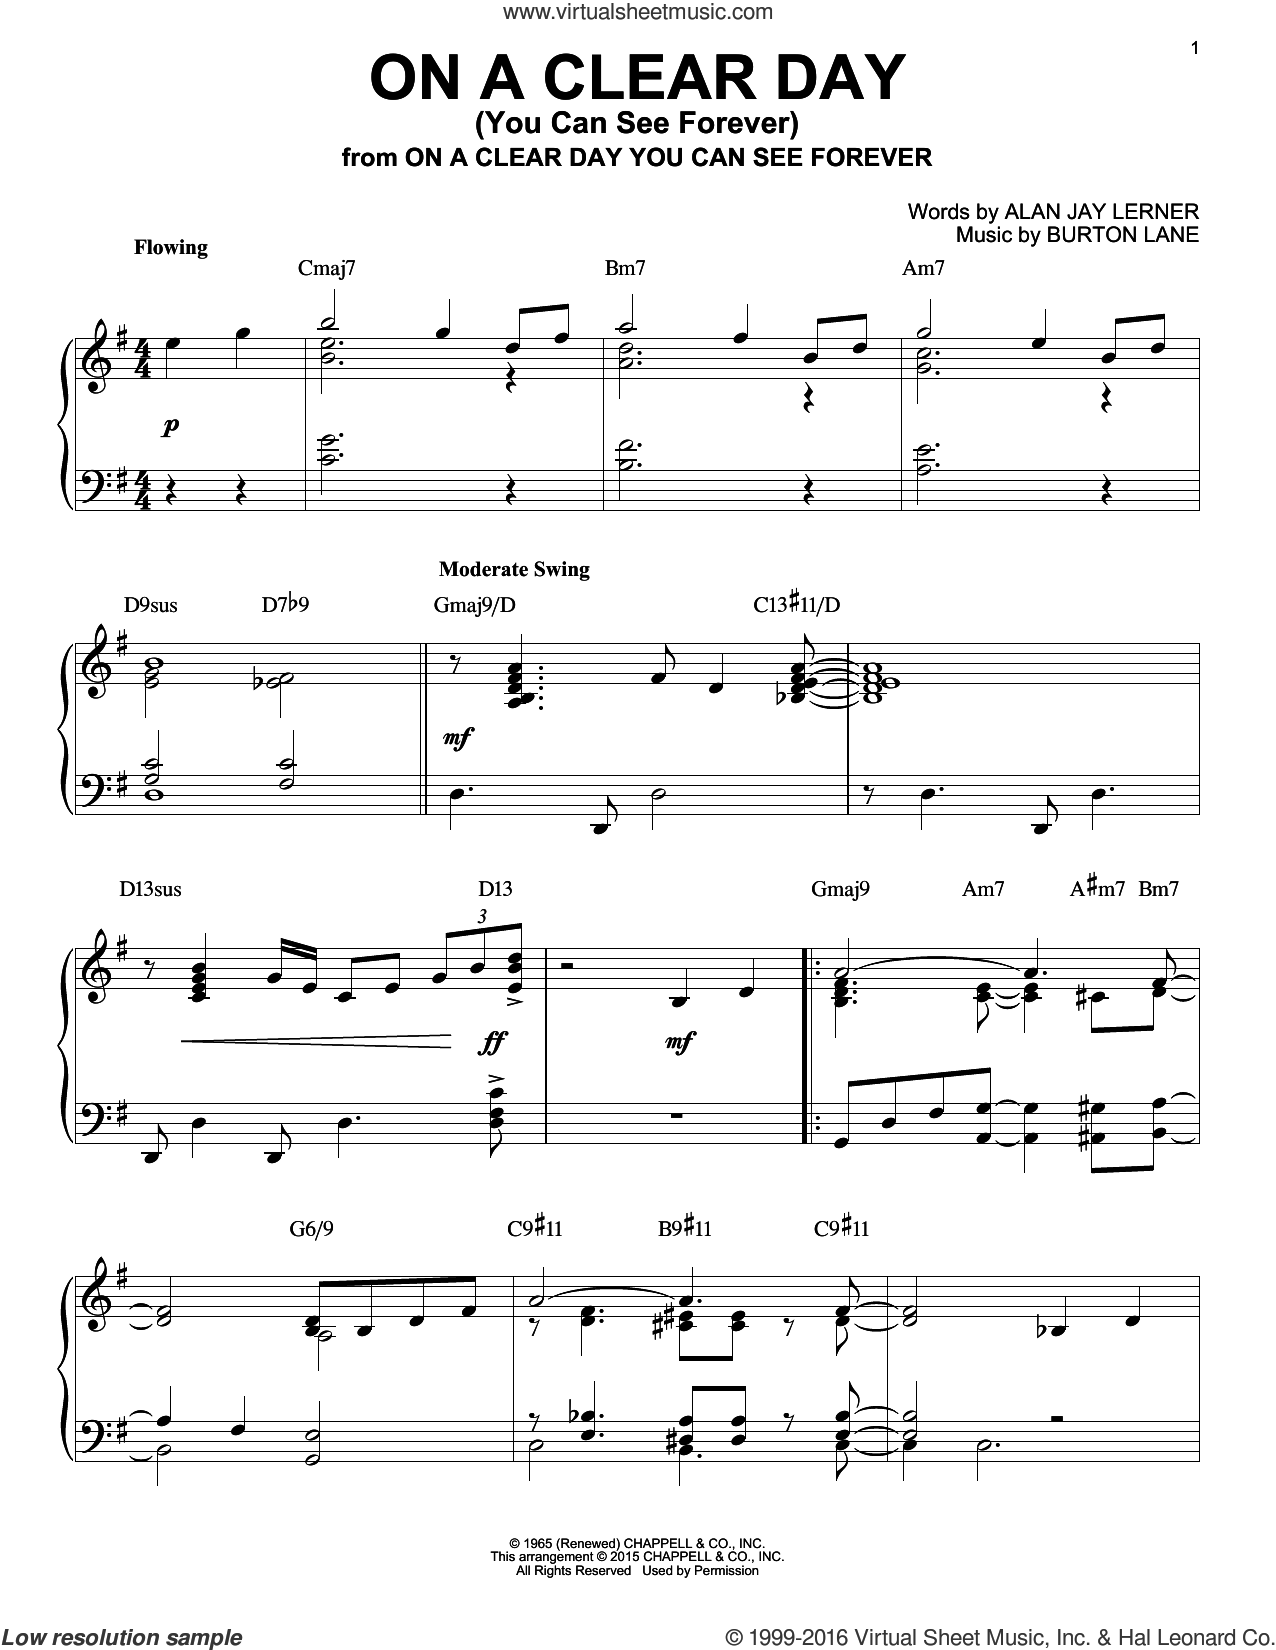 On A Clear Day (You Can See Forever) sheet music for piano solo by Alan Jay Lerner